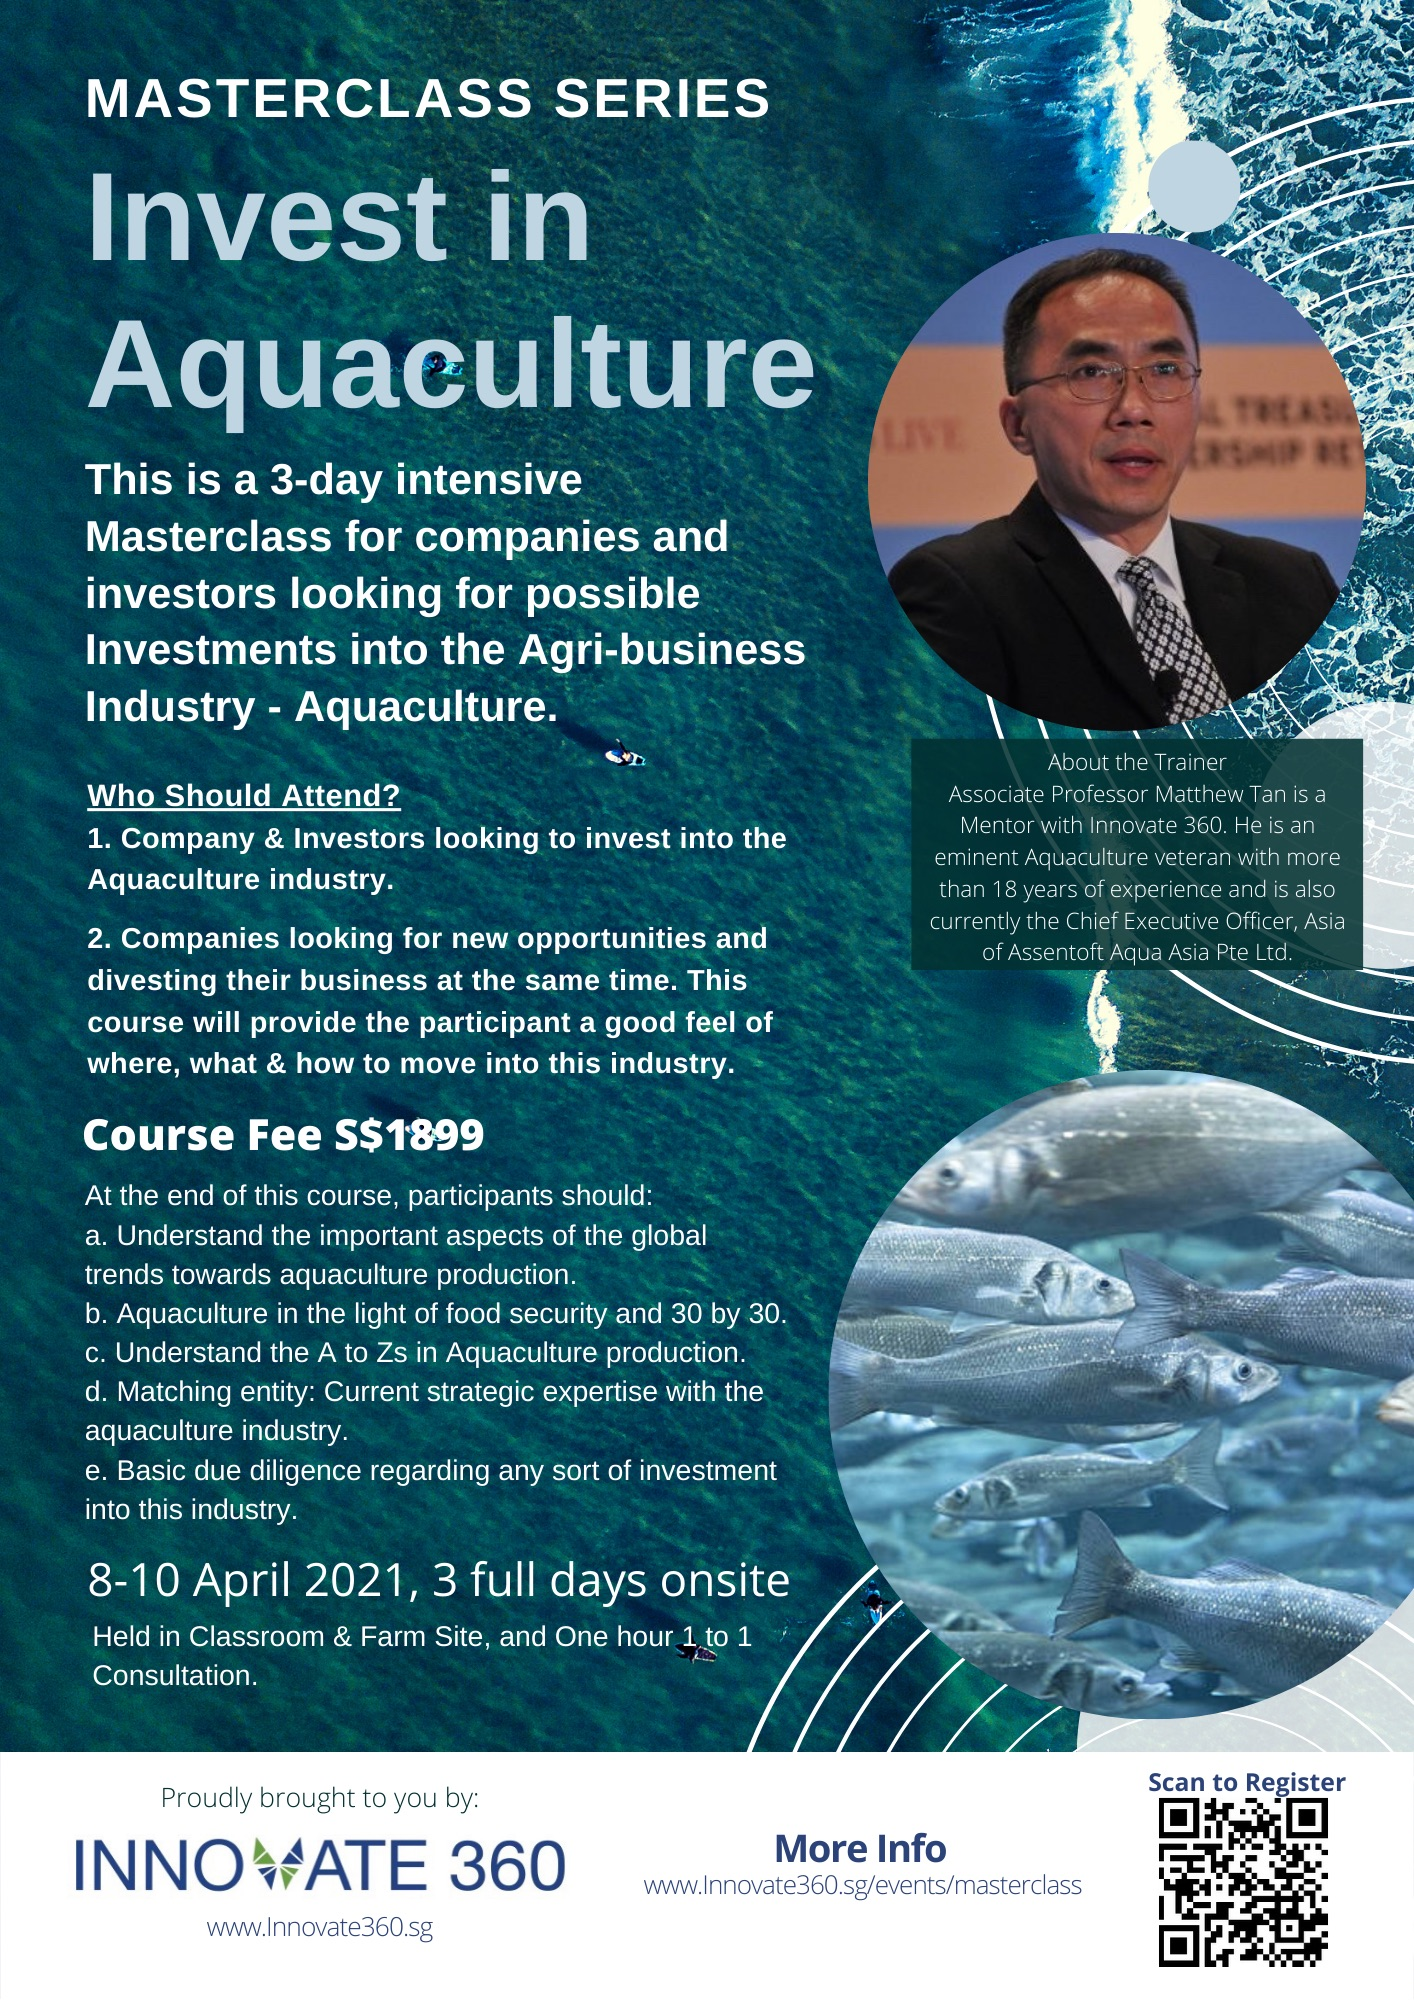 Masterclass Series: Invest in Aquaculture